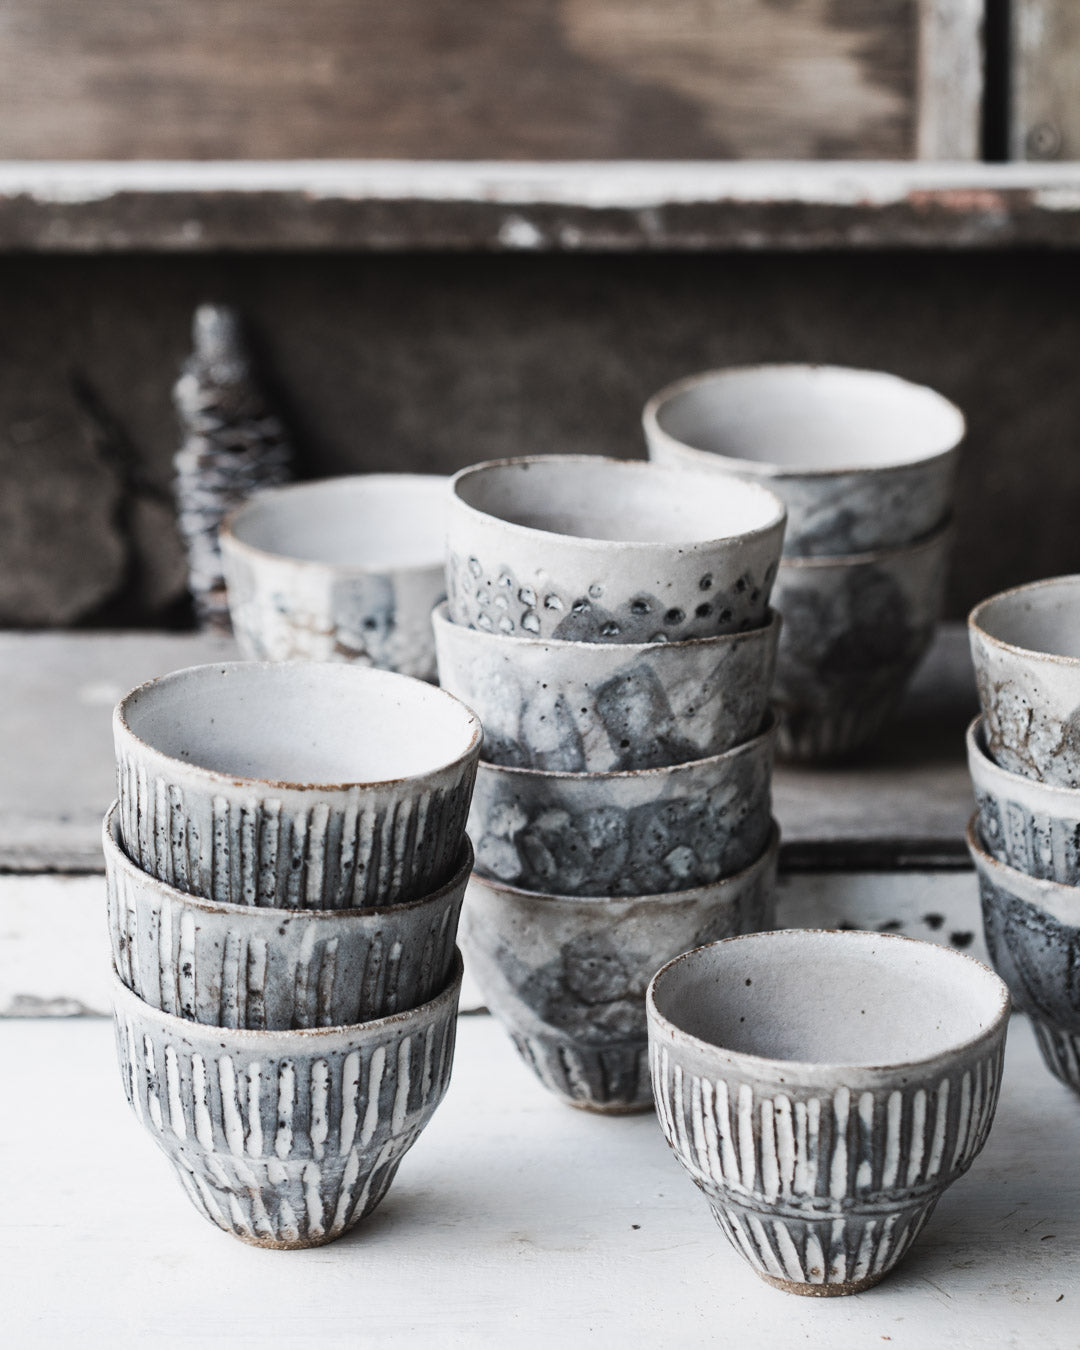 Carved rustic handmade yunomi style cups with grey/white glazing by clay beehive ceramics